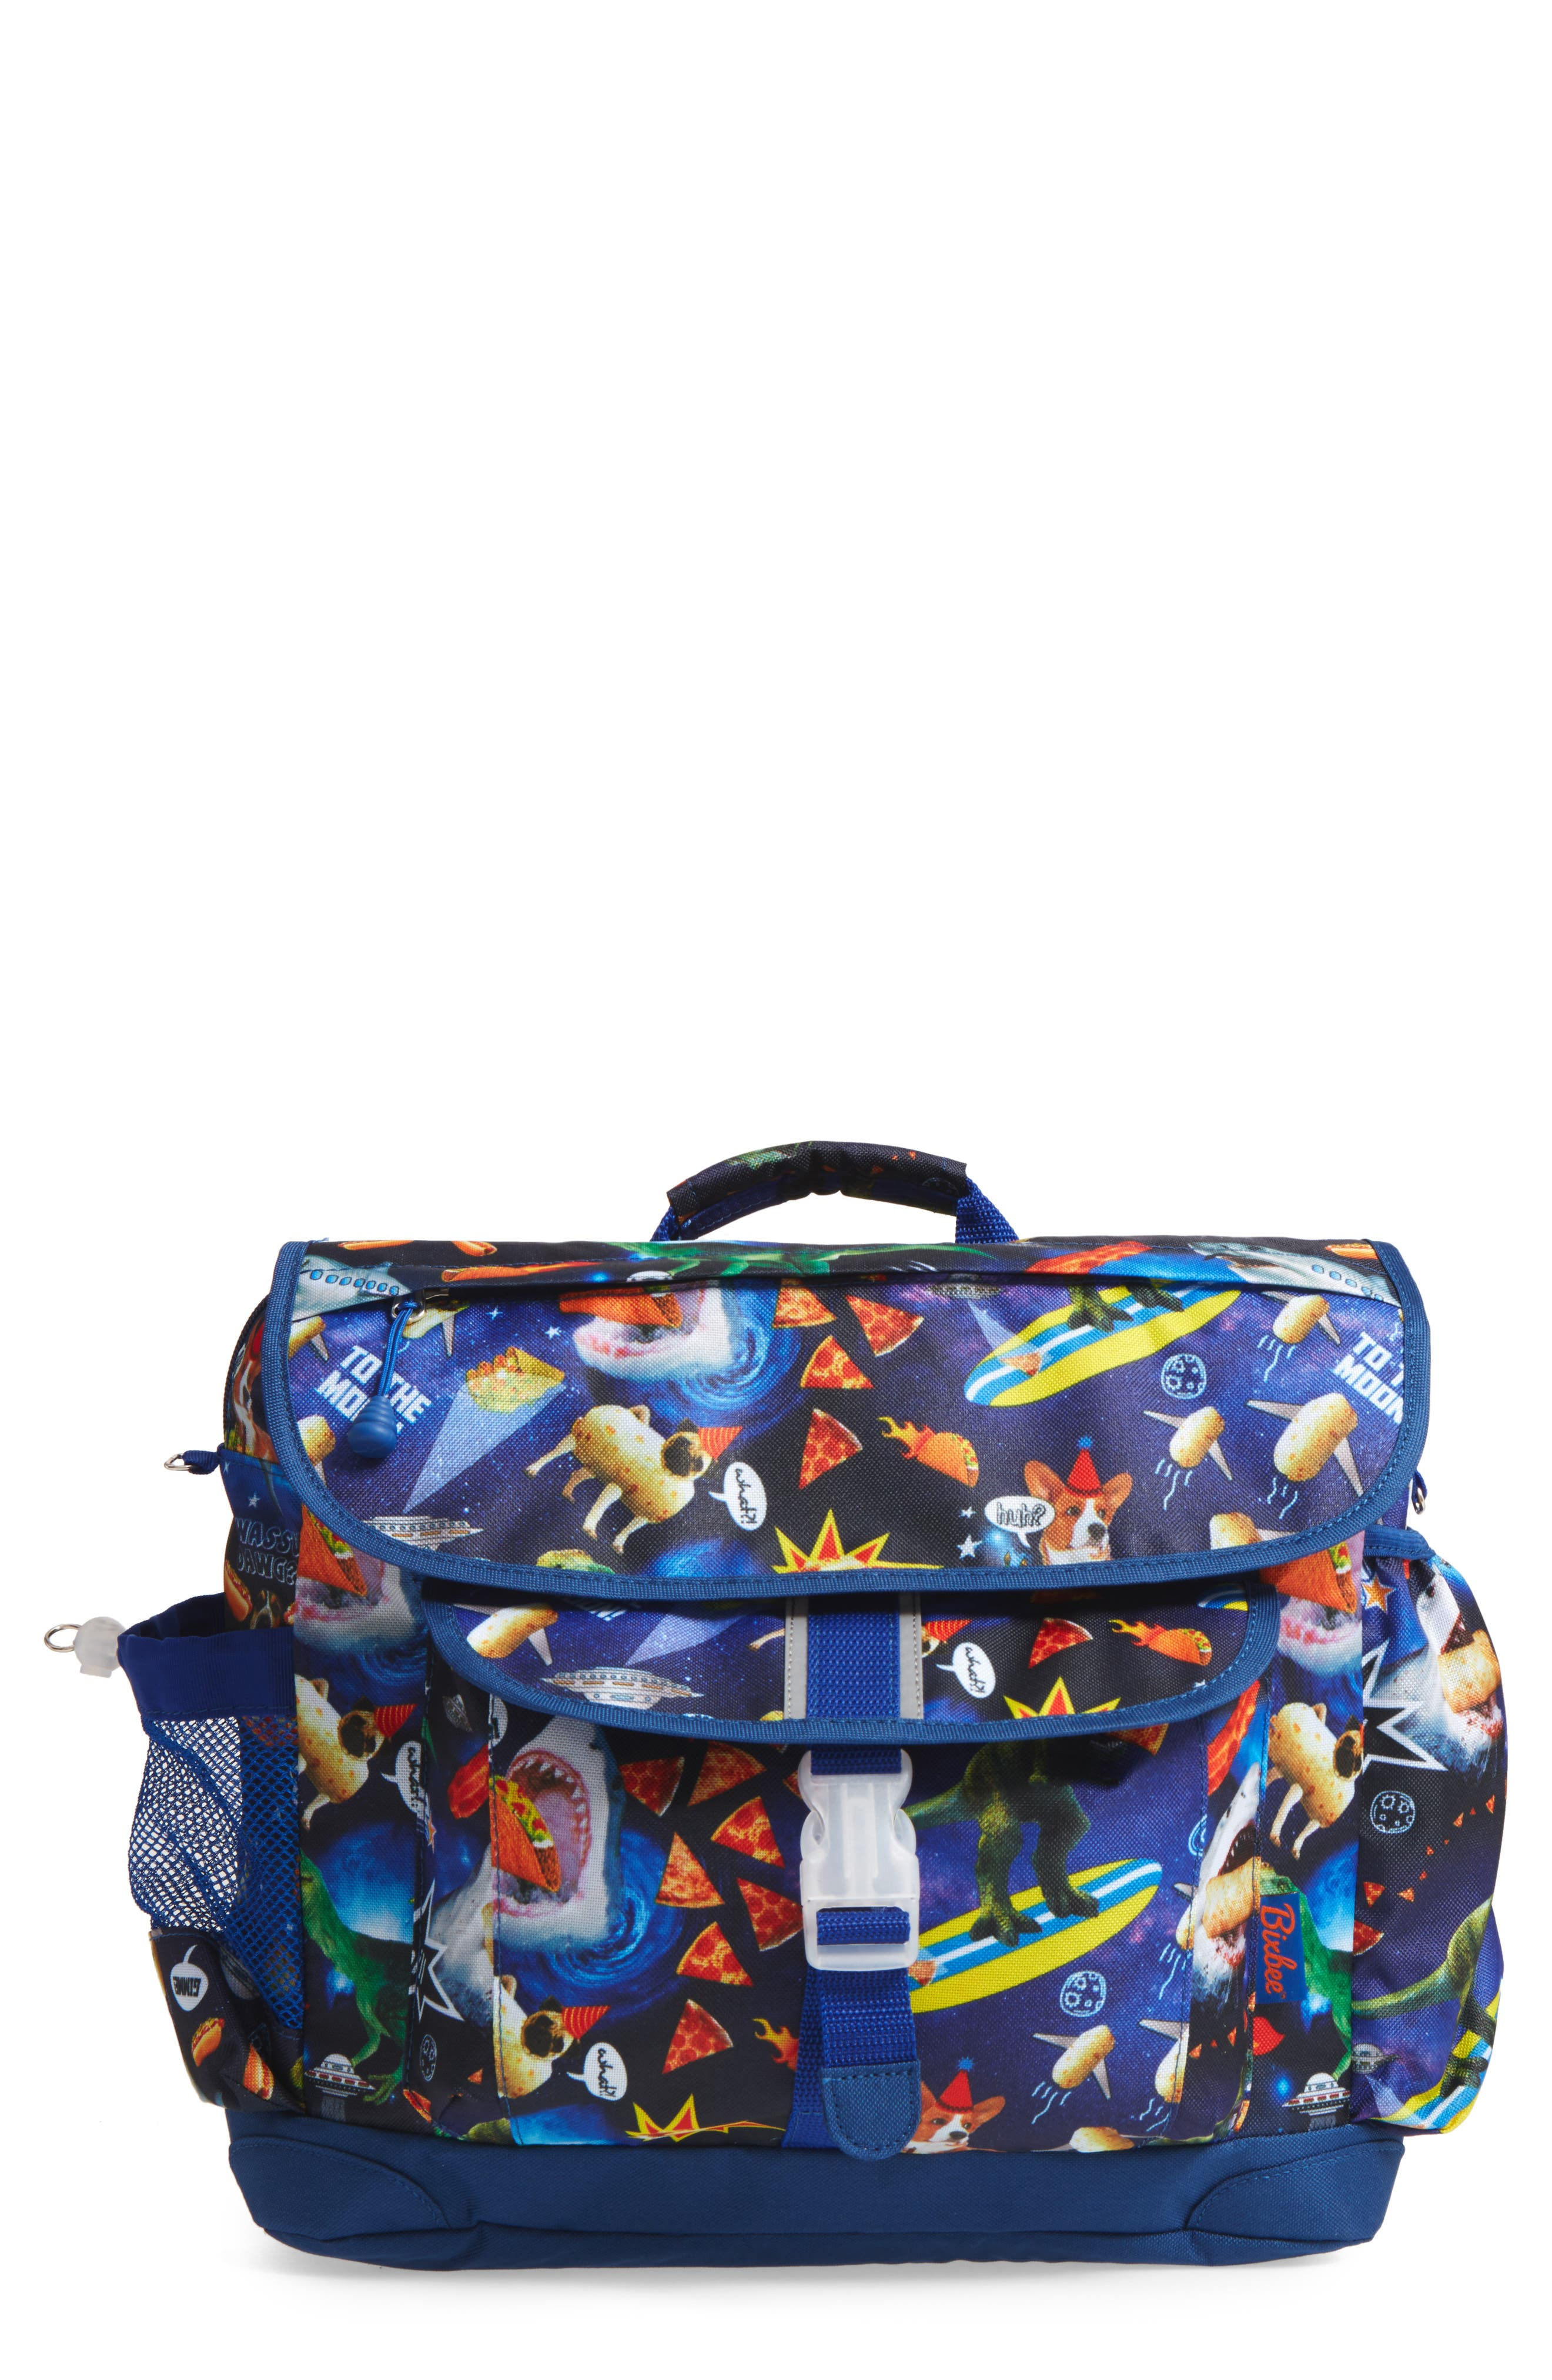 Meme Space Odyssey Backpack,                         Main,                         color, 400